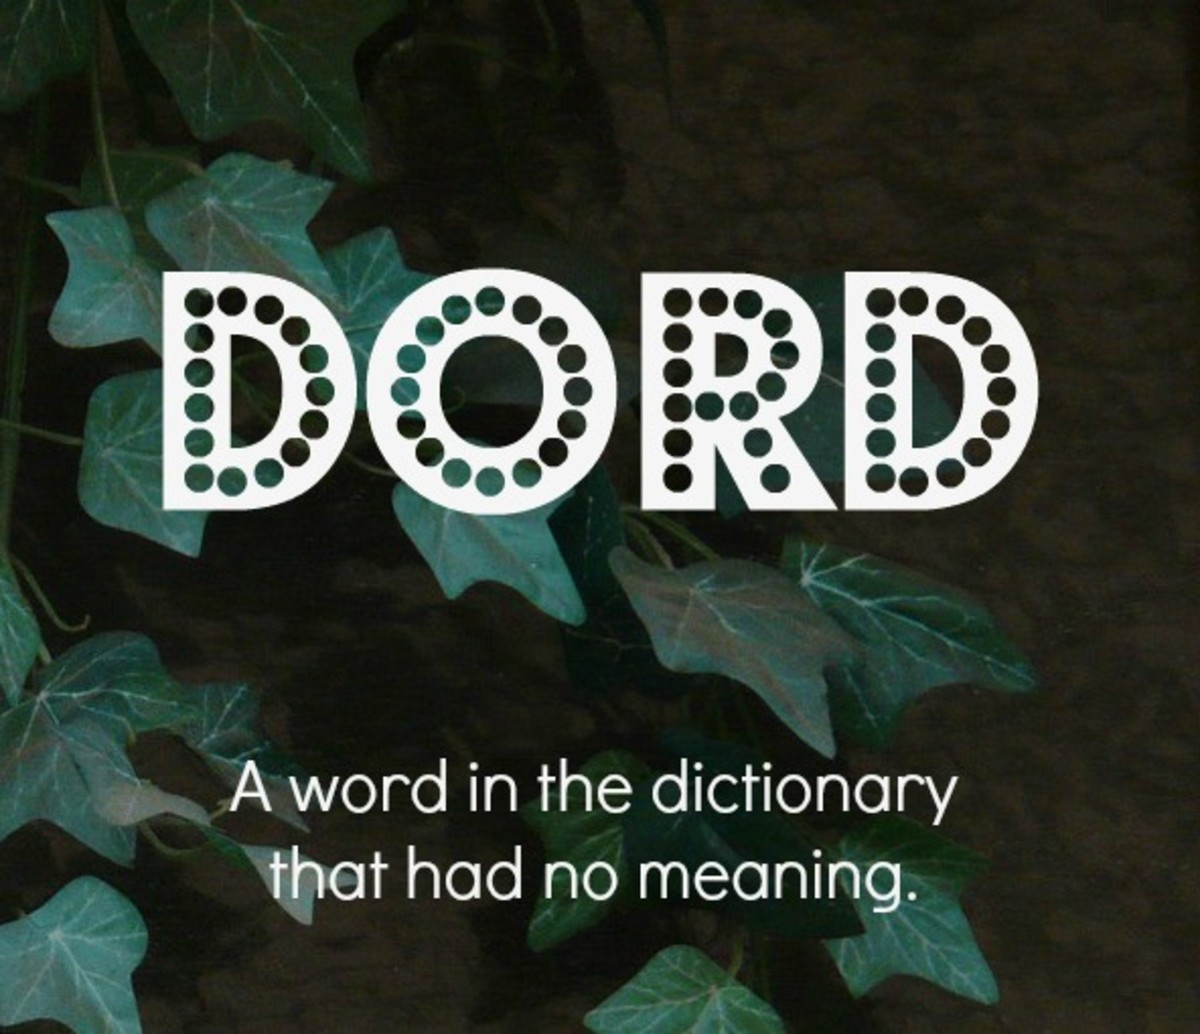 """Dord"" was in the dictionary for several years. It has no meaning. It was a typo."